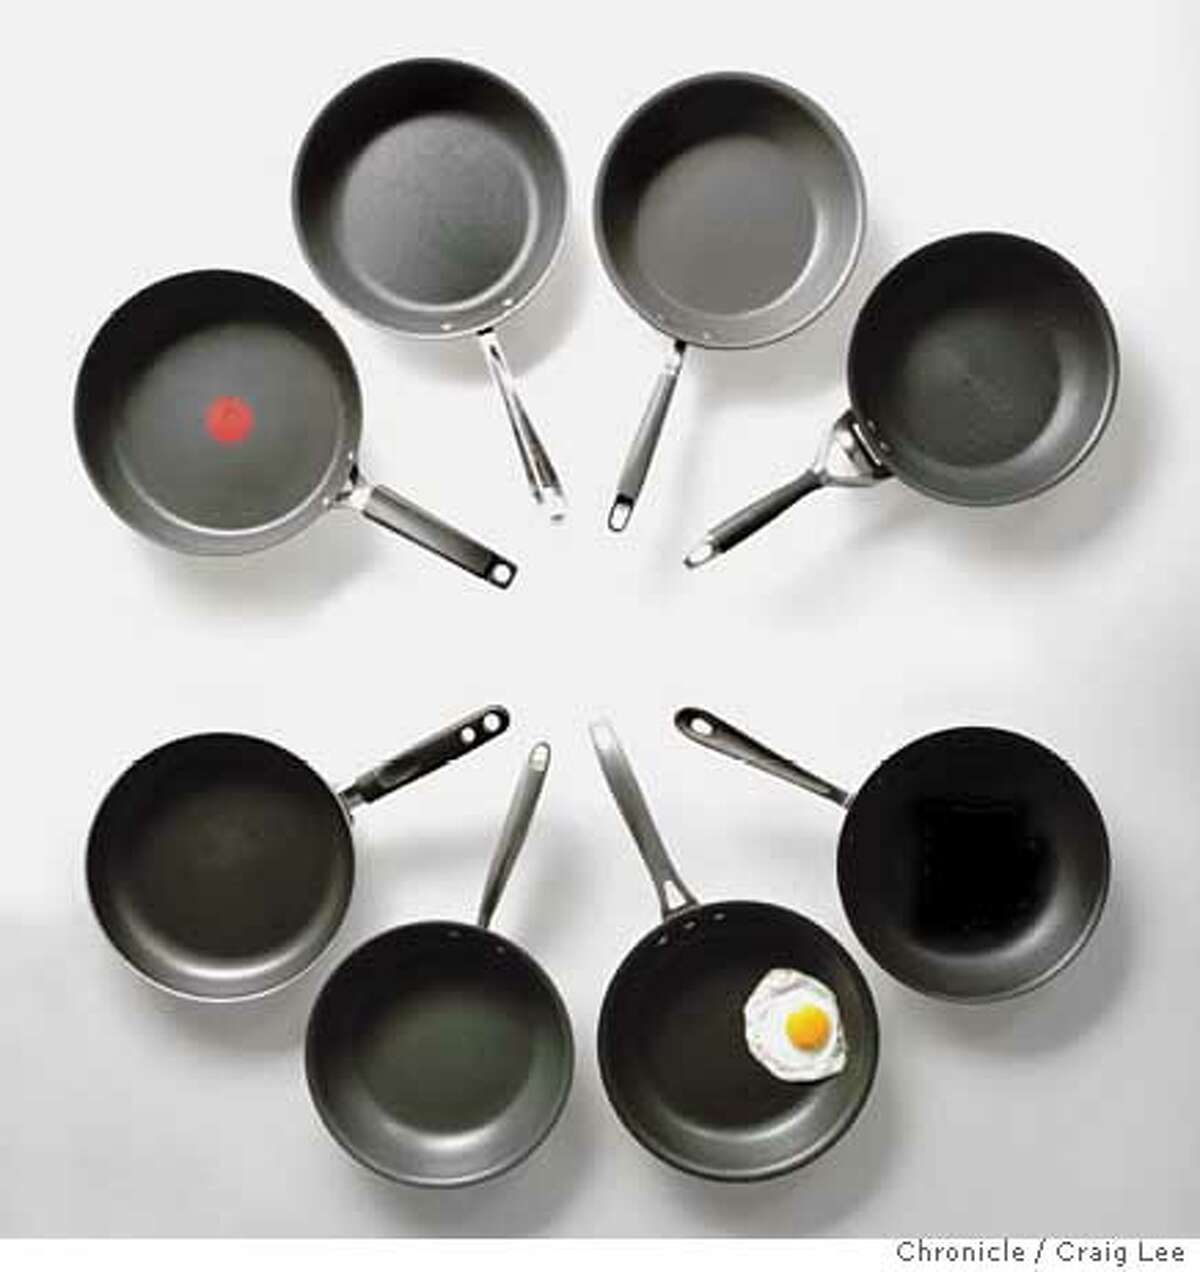 The Chronicle tested eight 10-inch nonstick pans in various price ranges. Chronicle photo by Craig Lee